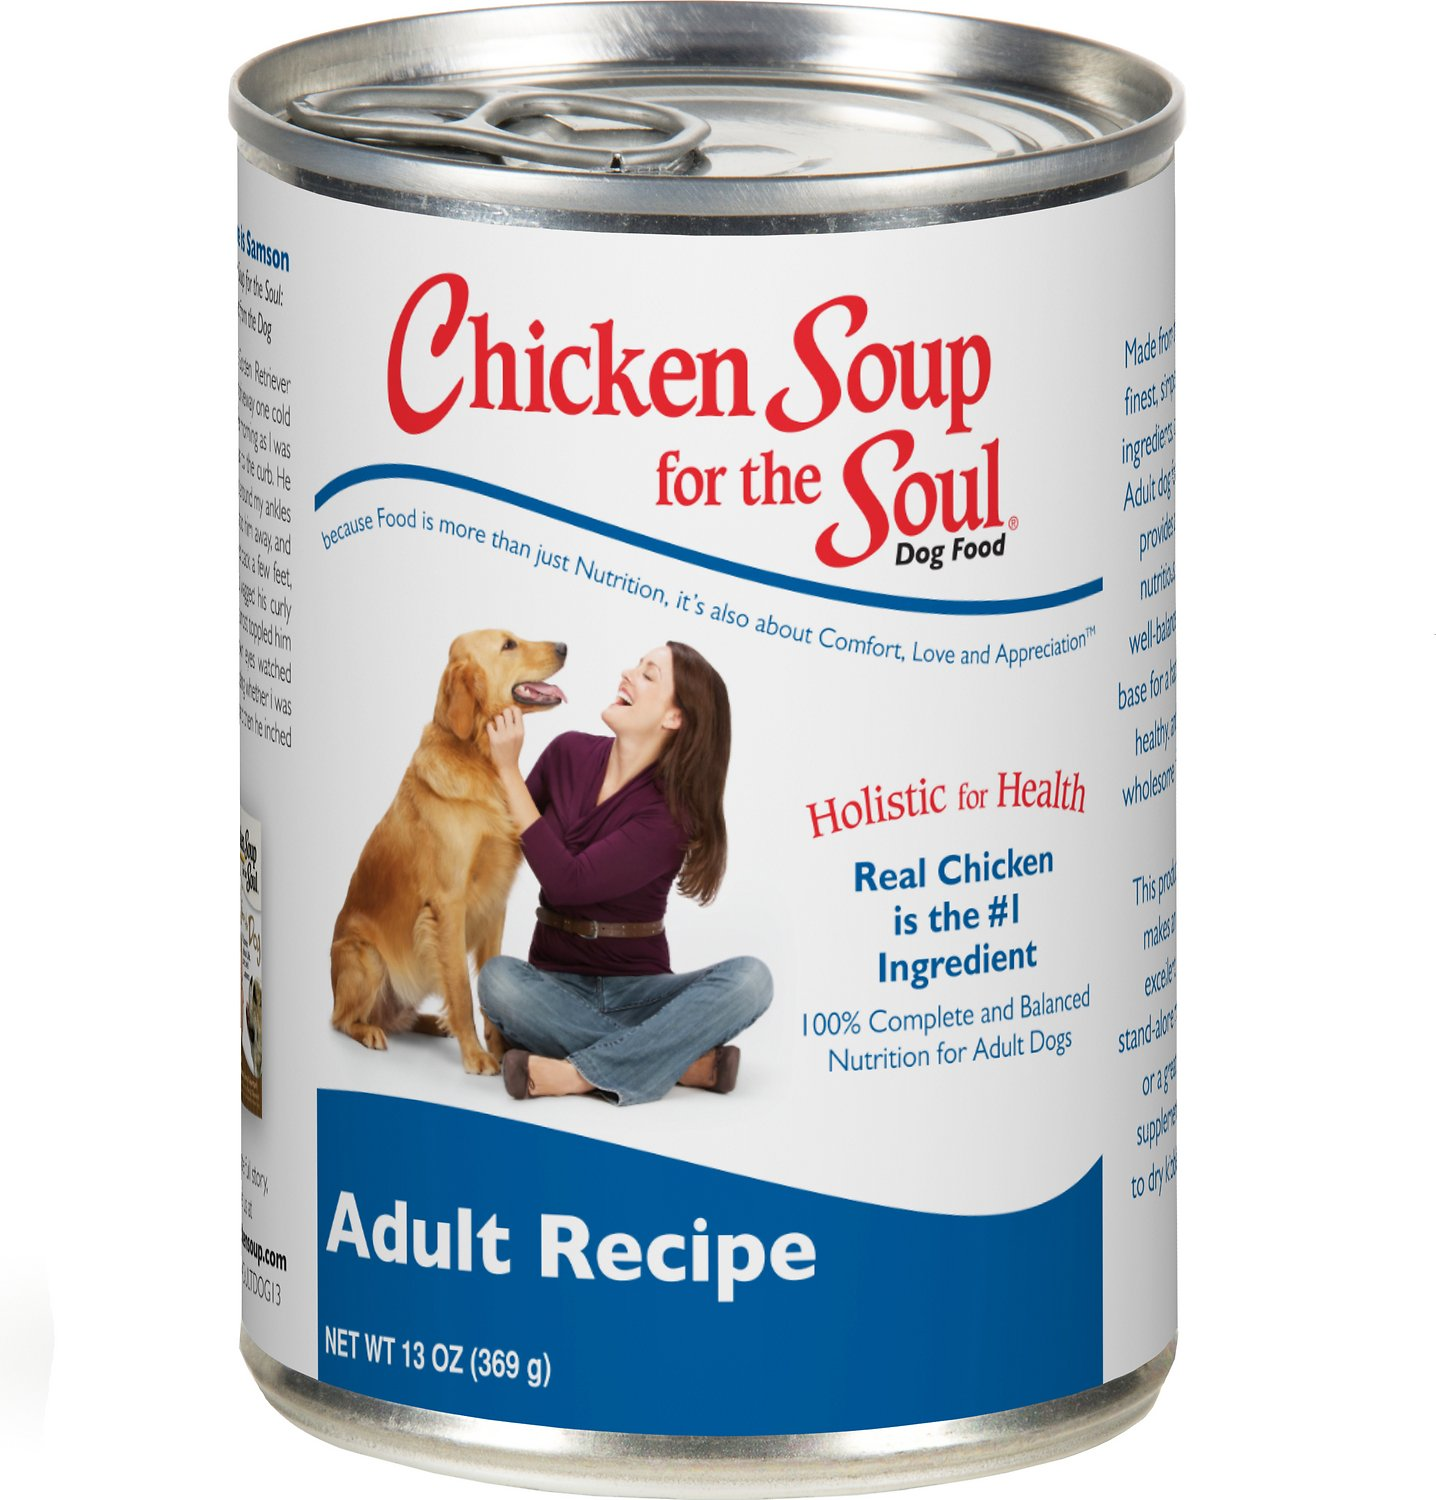 Chicken Soup Dog Food Reviews